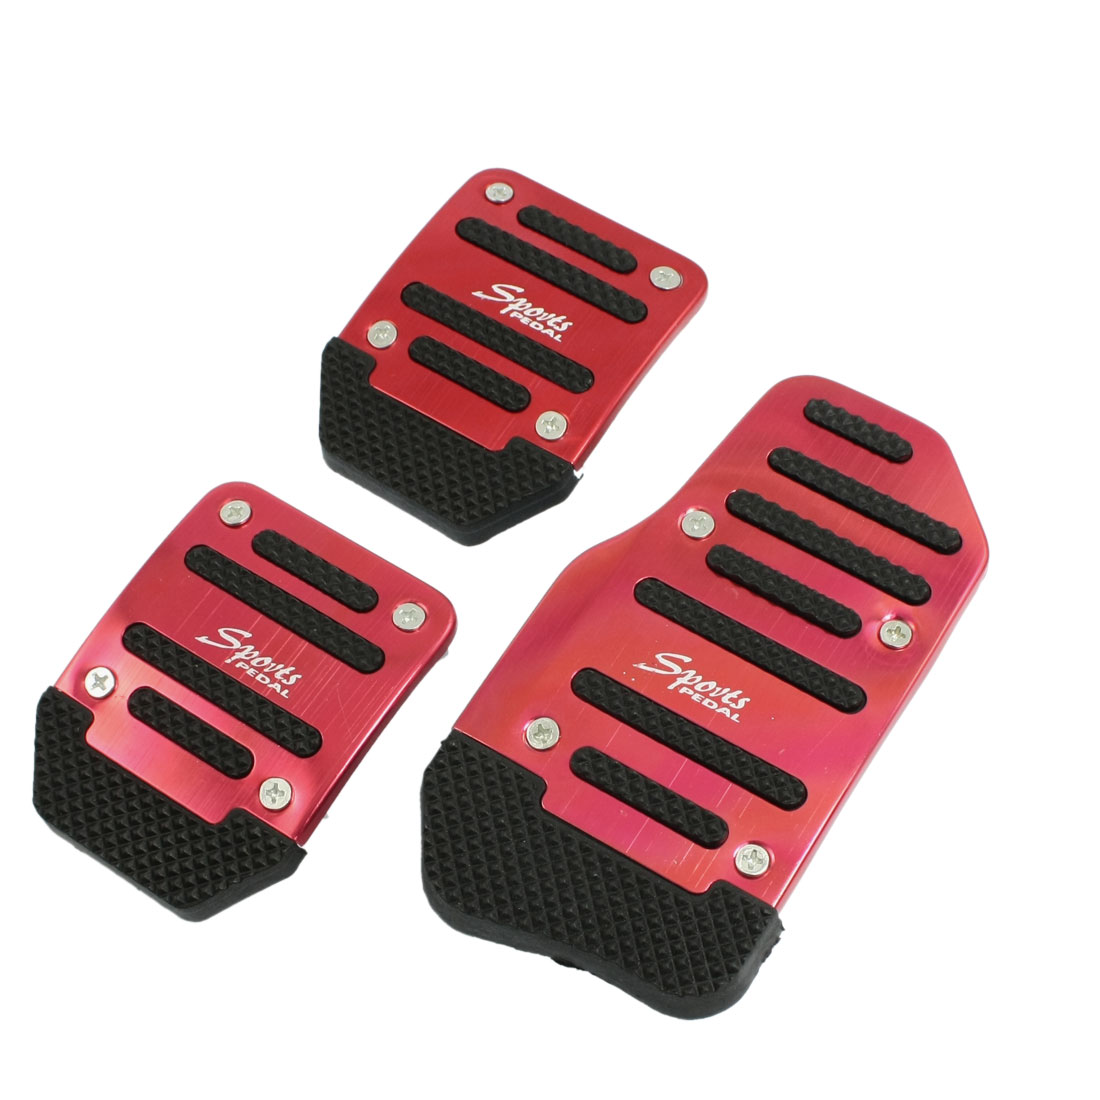 3 x Manual Car Gas Brake Clutch Pedal Pad Cover Set Black Red